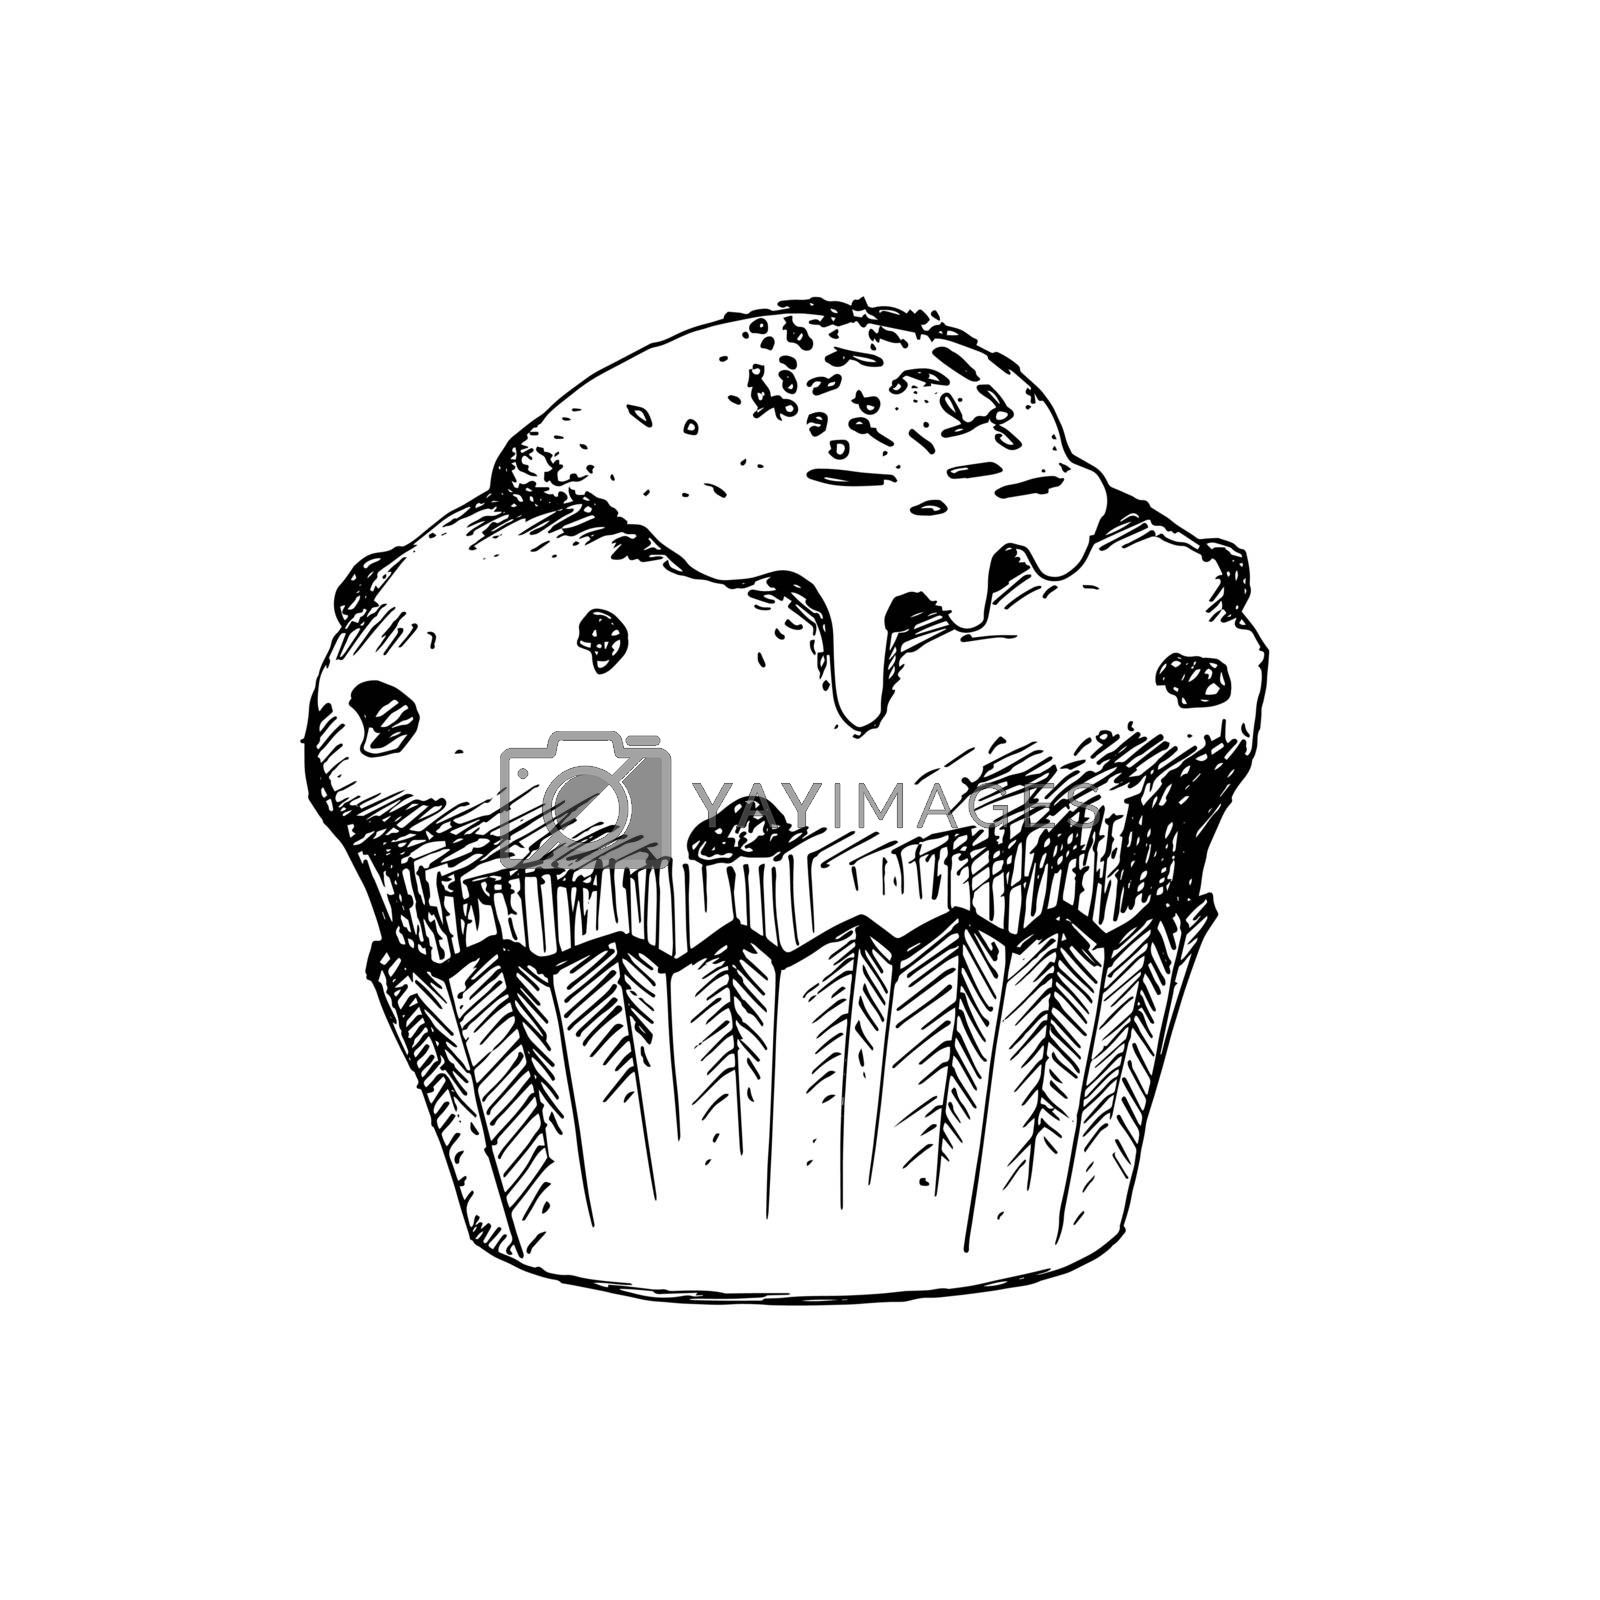 Hand Drawn Sketch of Cup Cake. Vintage Sketch. Great for Banner, Label, Poster